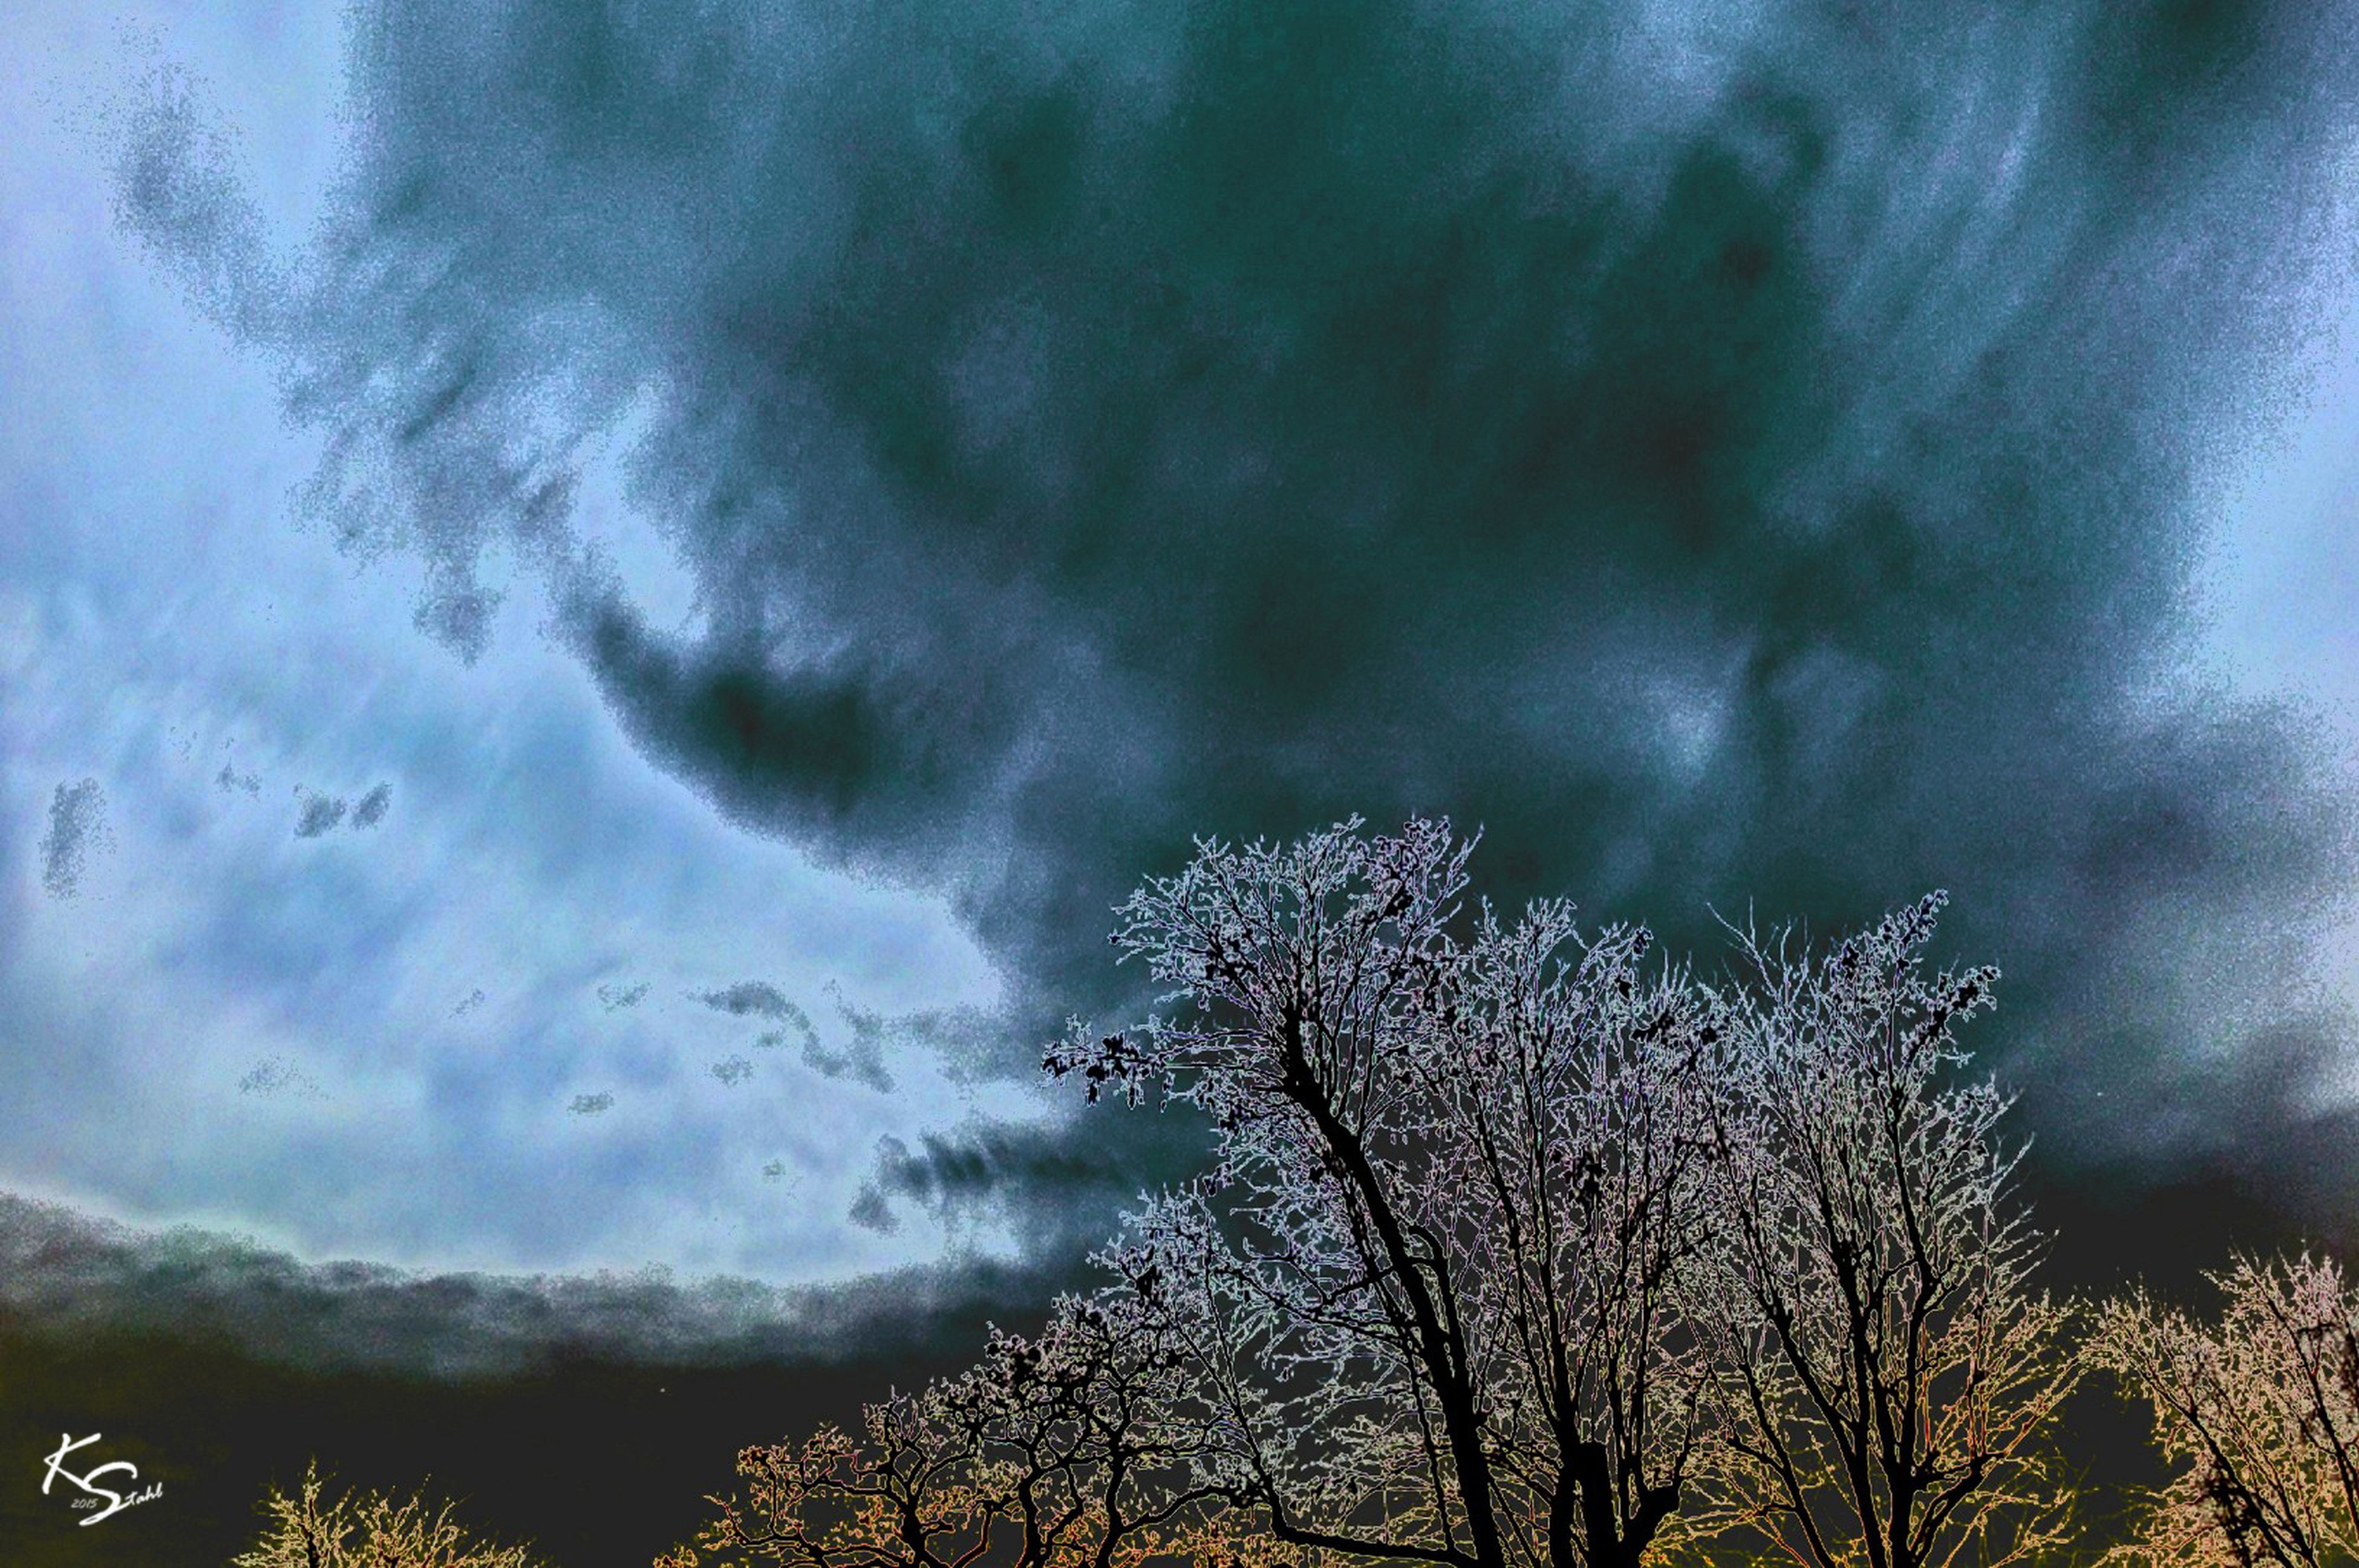 cloud - sky, sky, weather, cloudy, tree, low angle view, beauty in nature, tranquility, nature, scenics, overcast, bare tree, tranquil scene, storm cloud, branch, dusk, atmospheric mood, growth, dramatic sky, outdoors